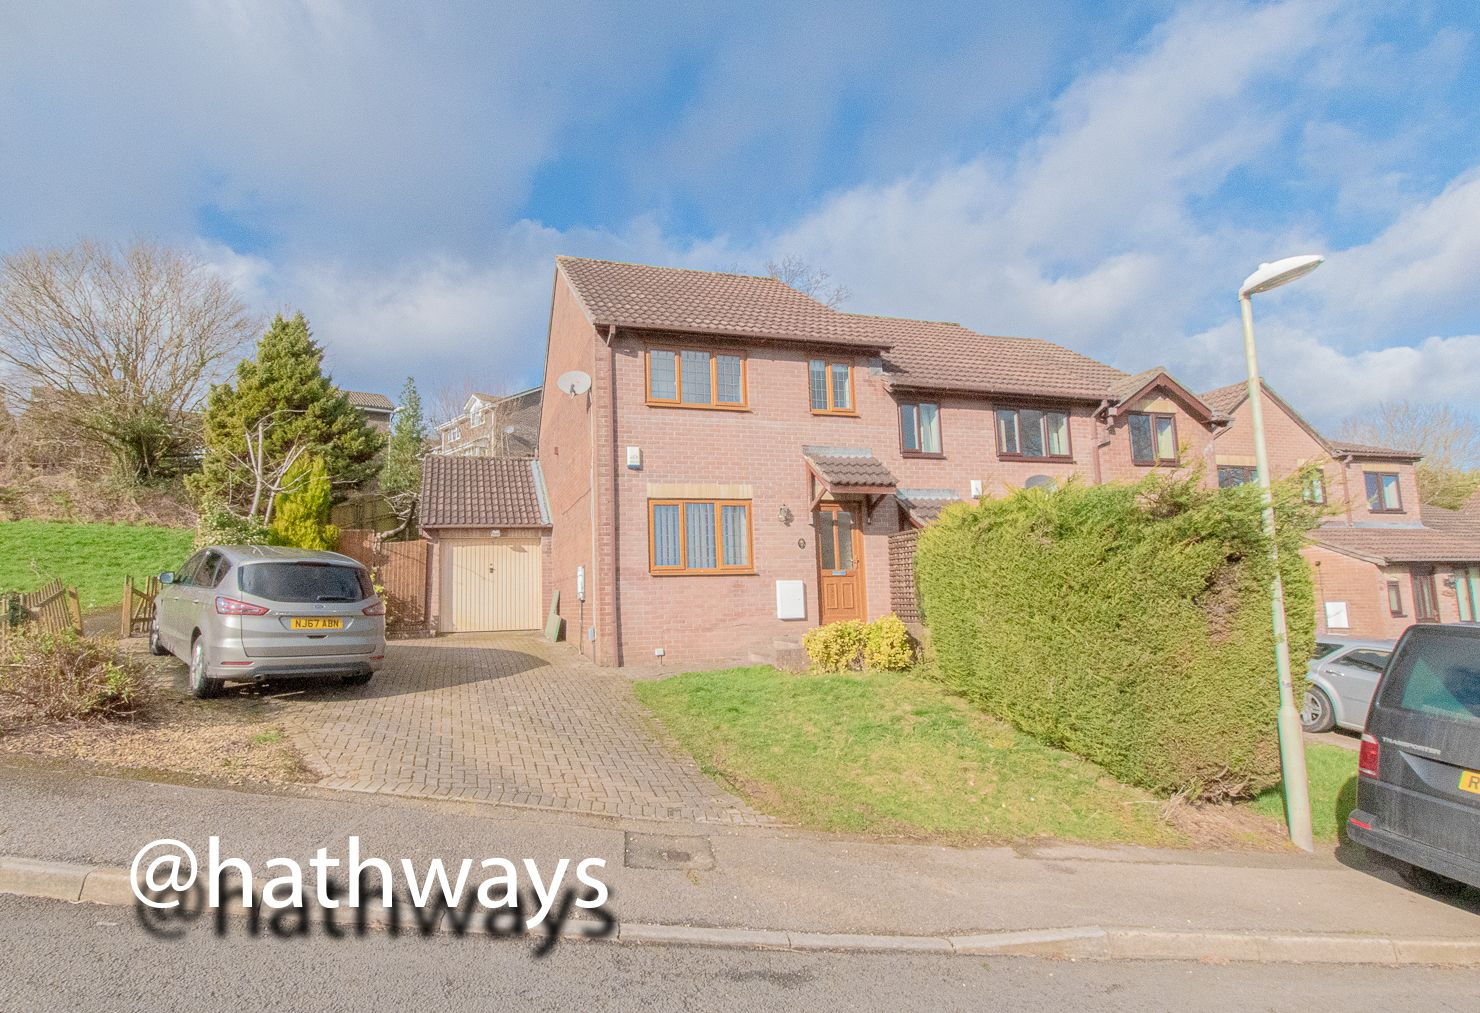 3 bed house to rent in Heather Court, NP44